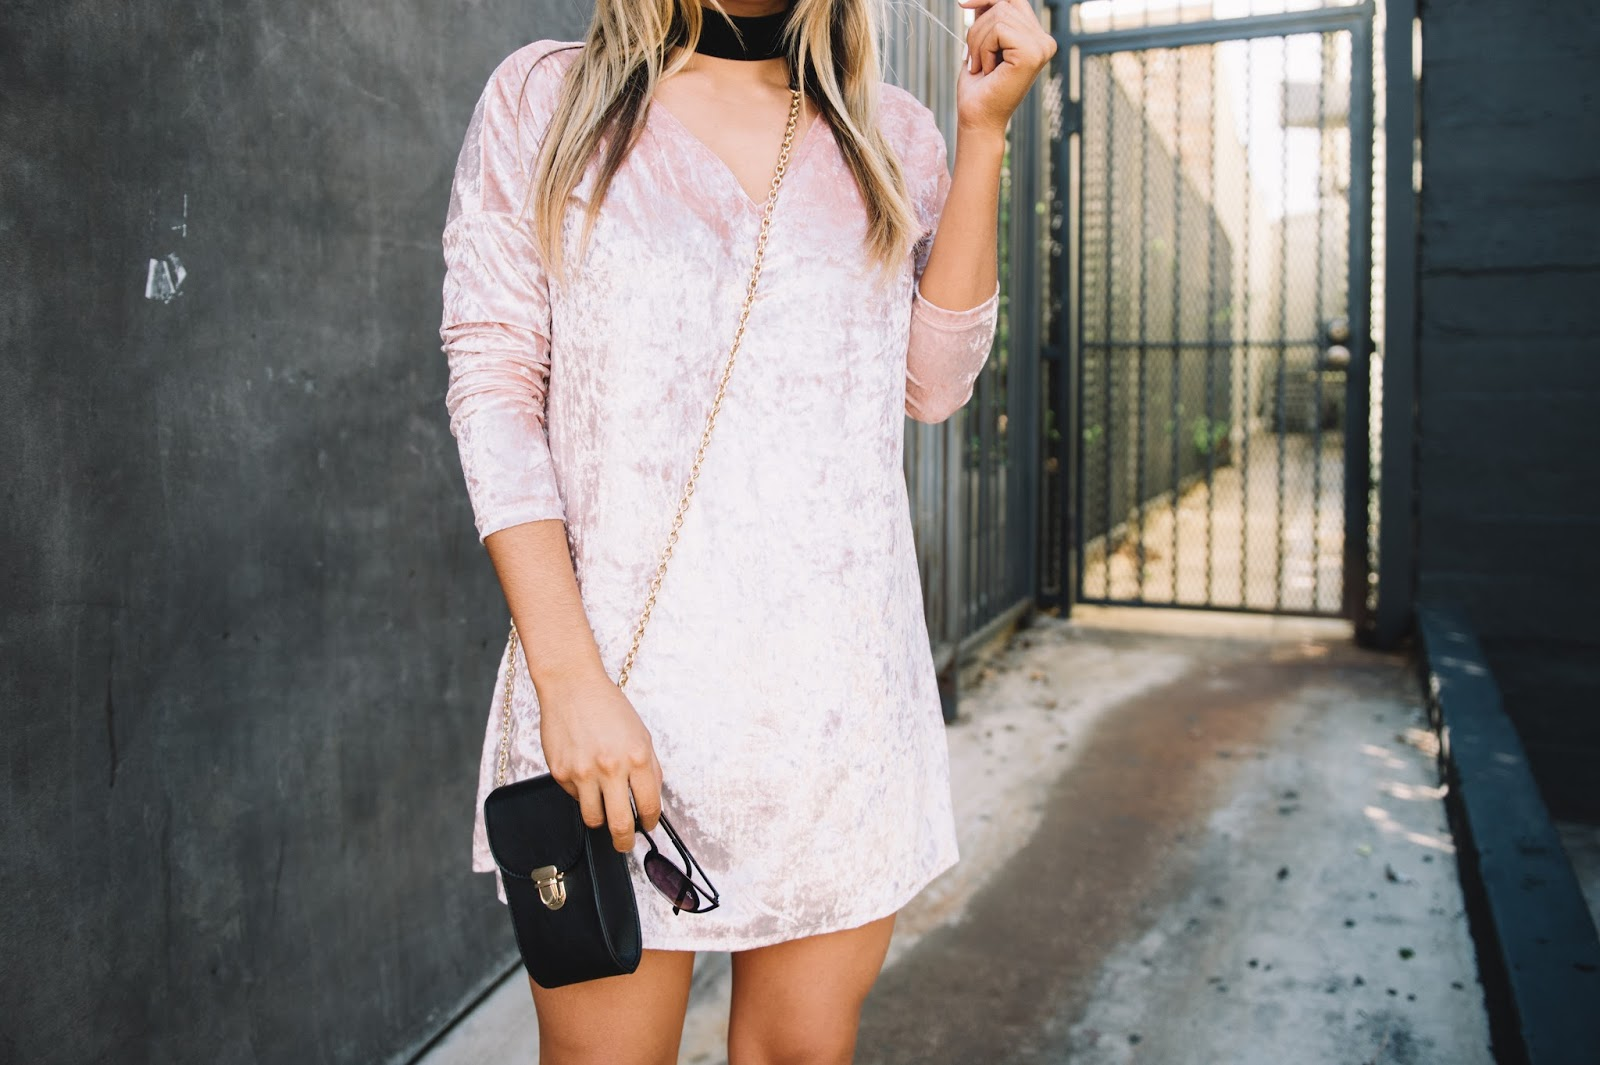 Velvet Dress -- Style Blogger @taylorwinkelmeyer